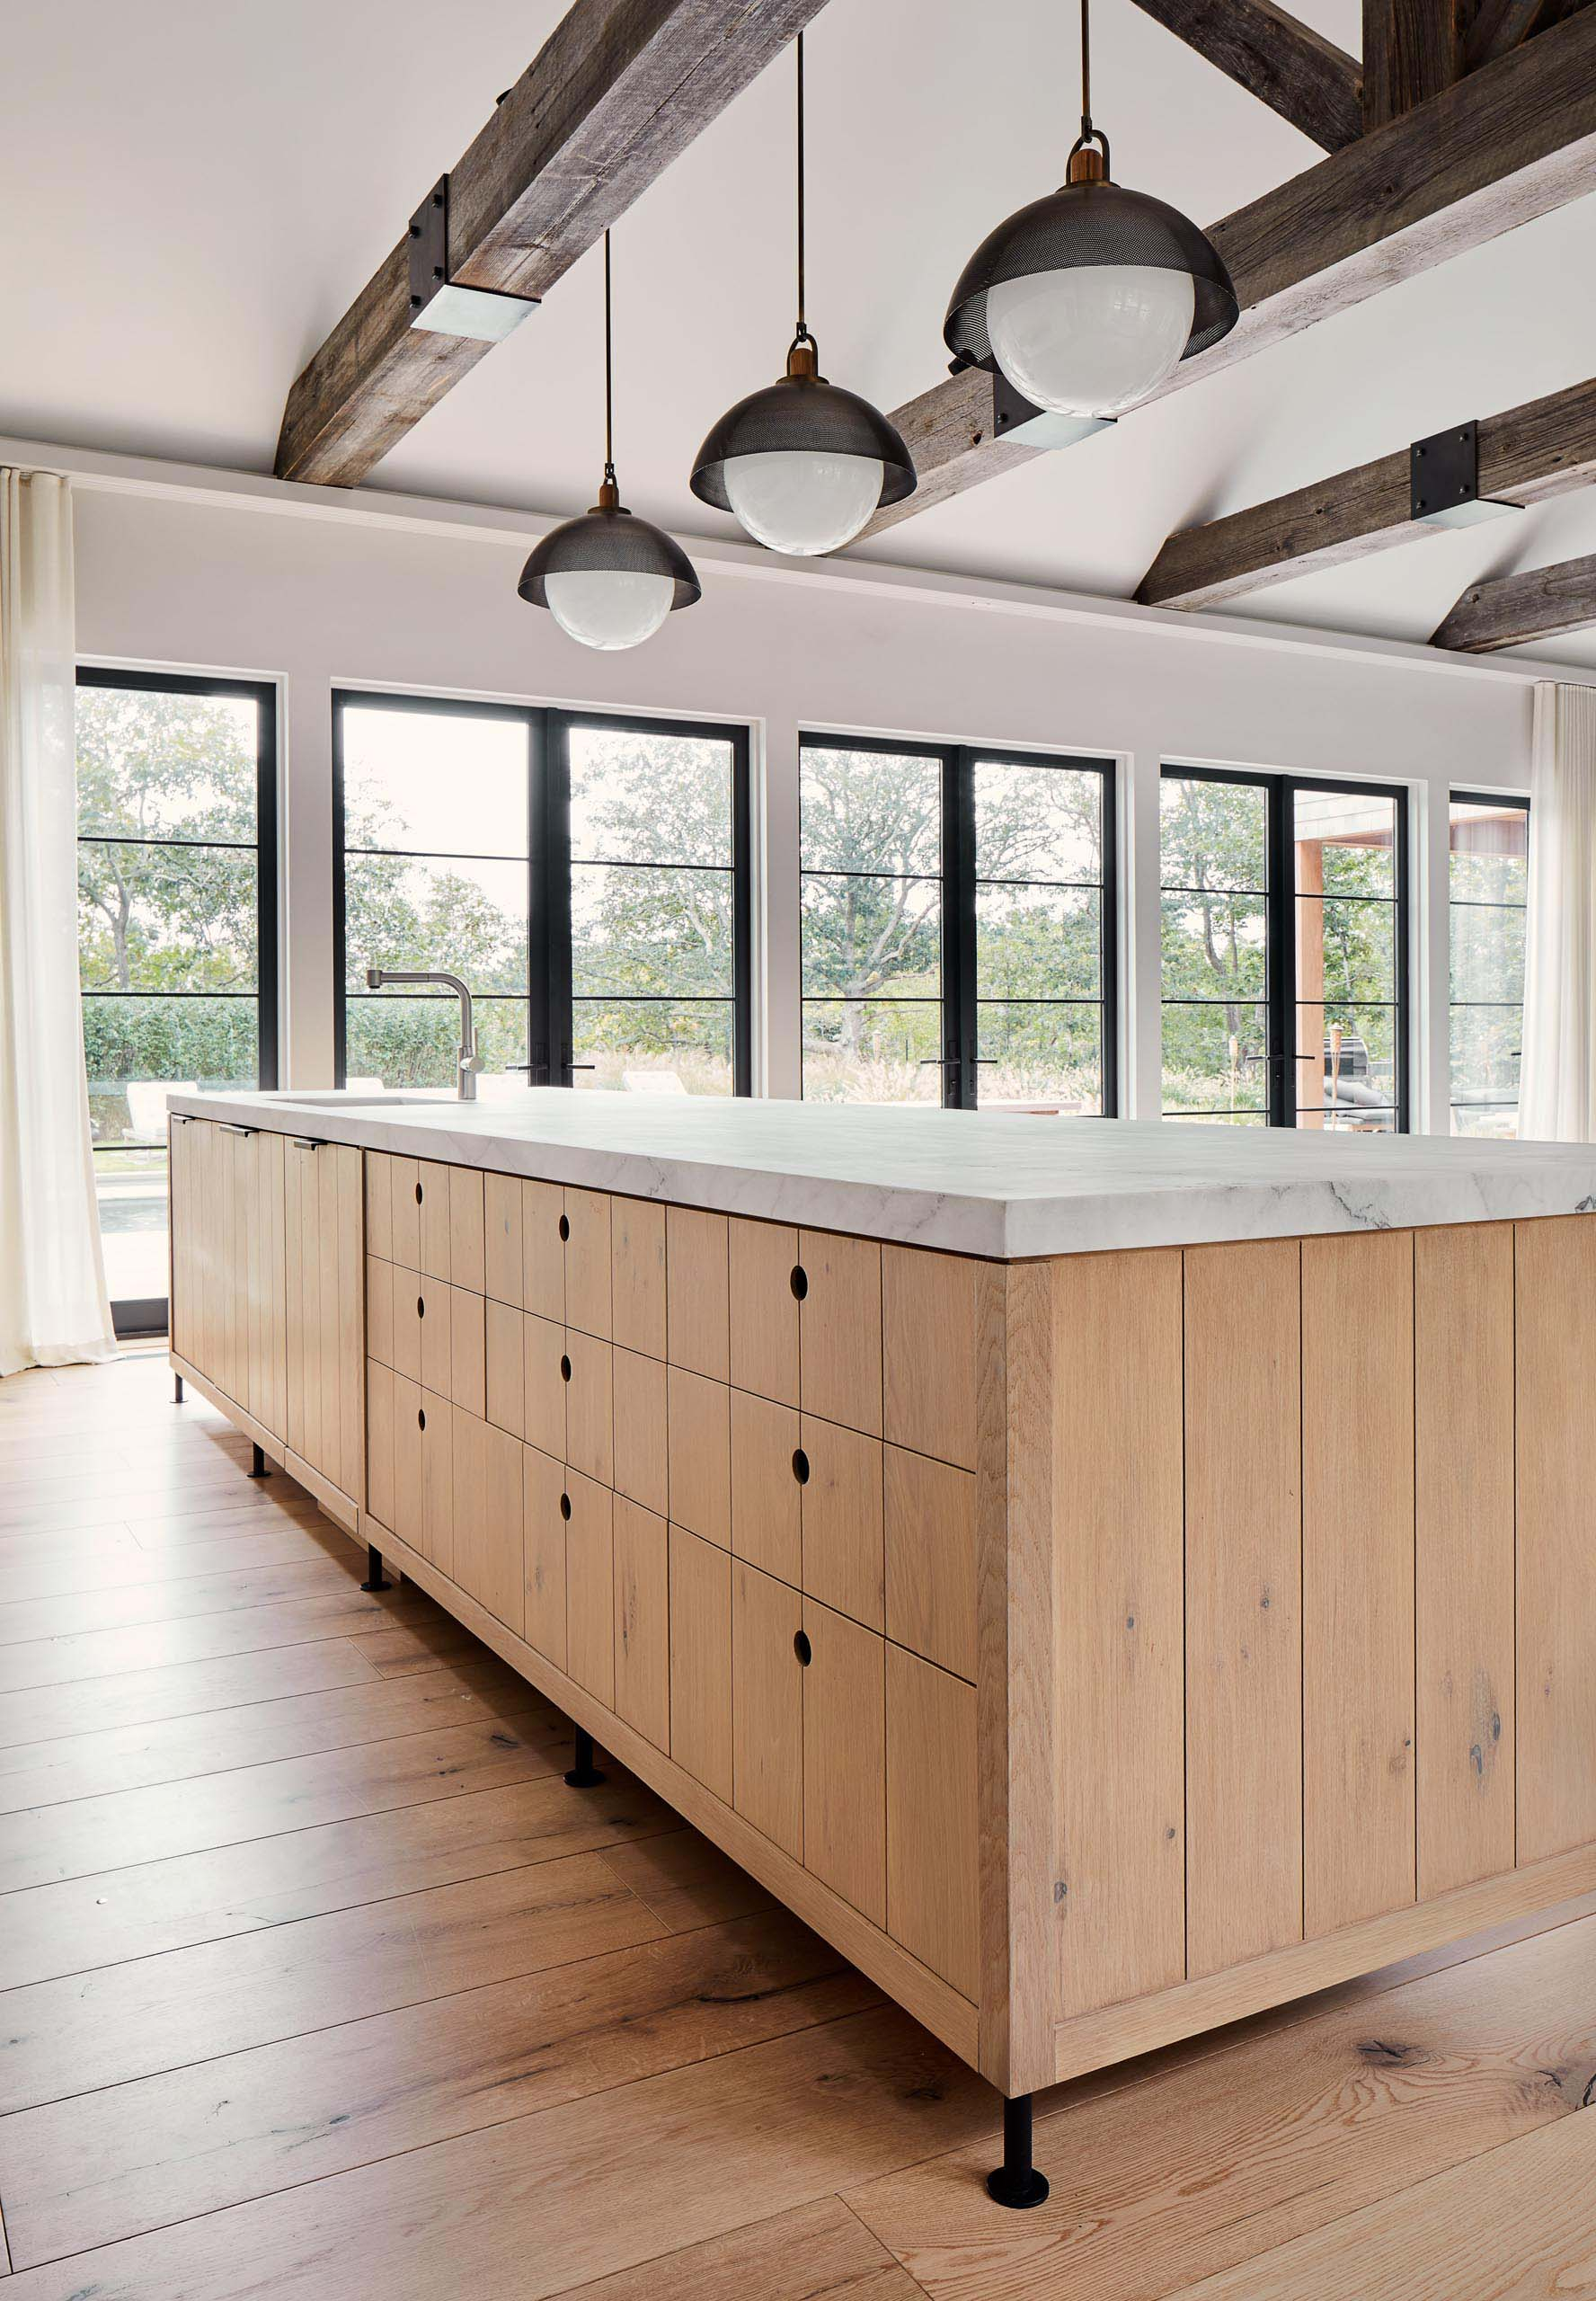 This modern farmhouse kitchen island has wood cabinets and drawers, while hanging above the island are pendant lights from Allied Maker, and the stools are from Skram Furniture Co.